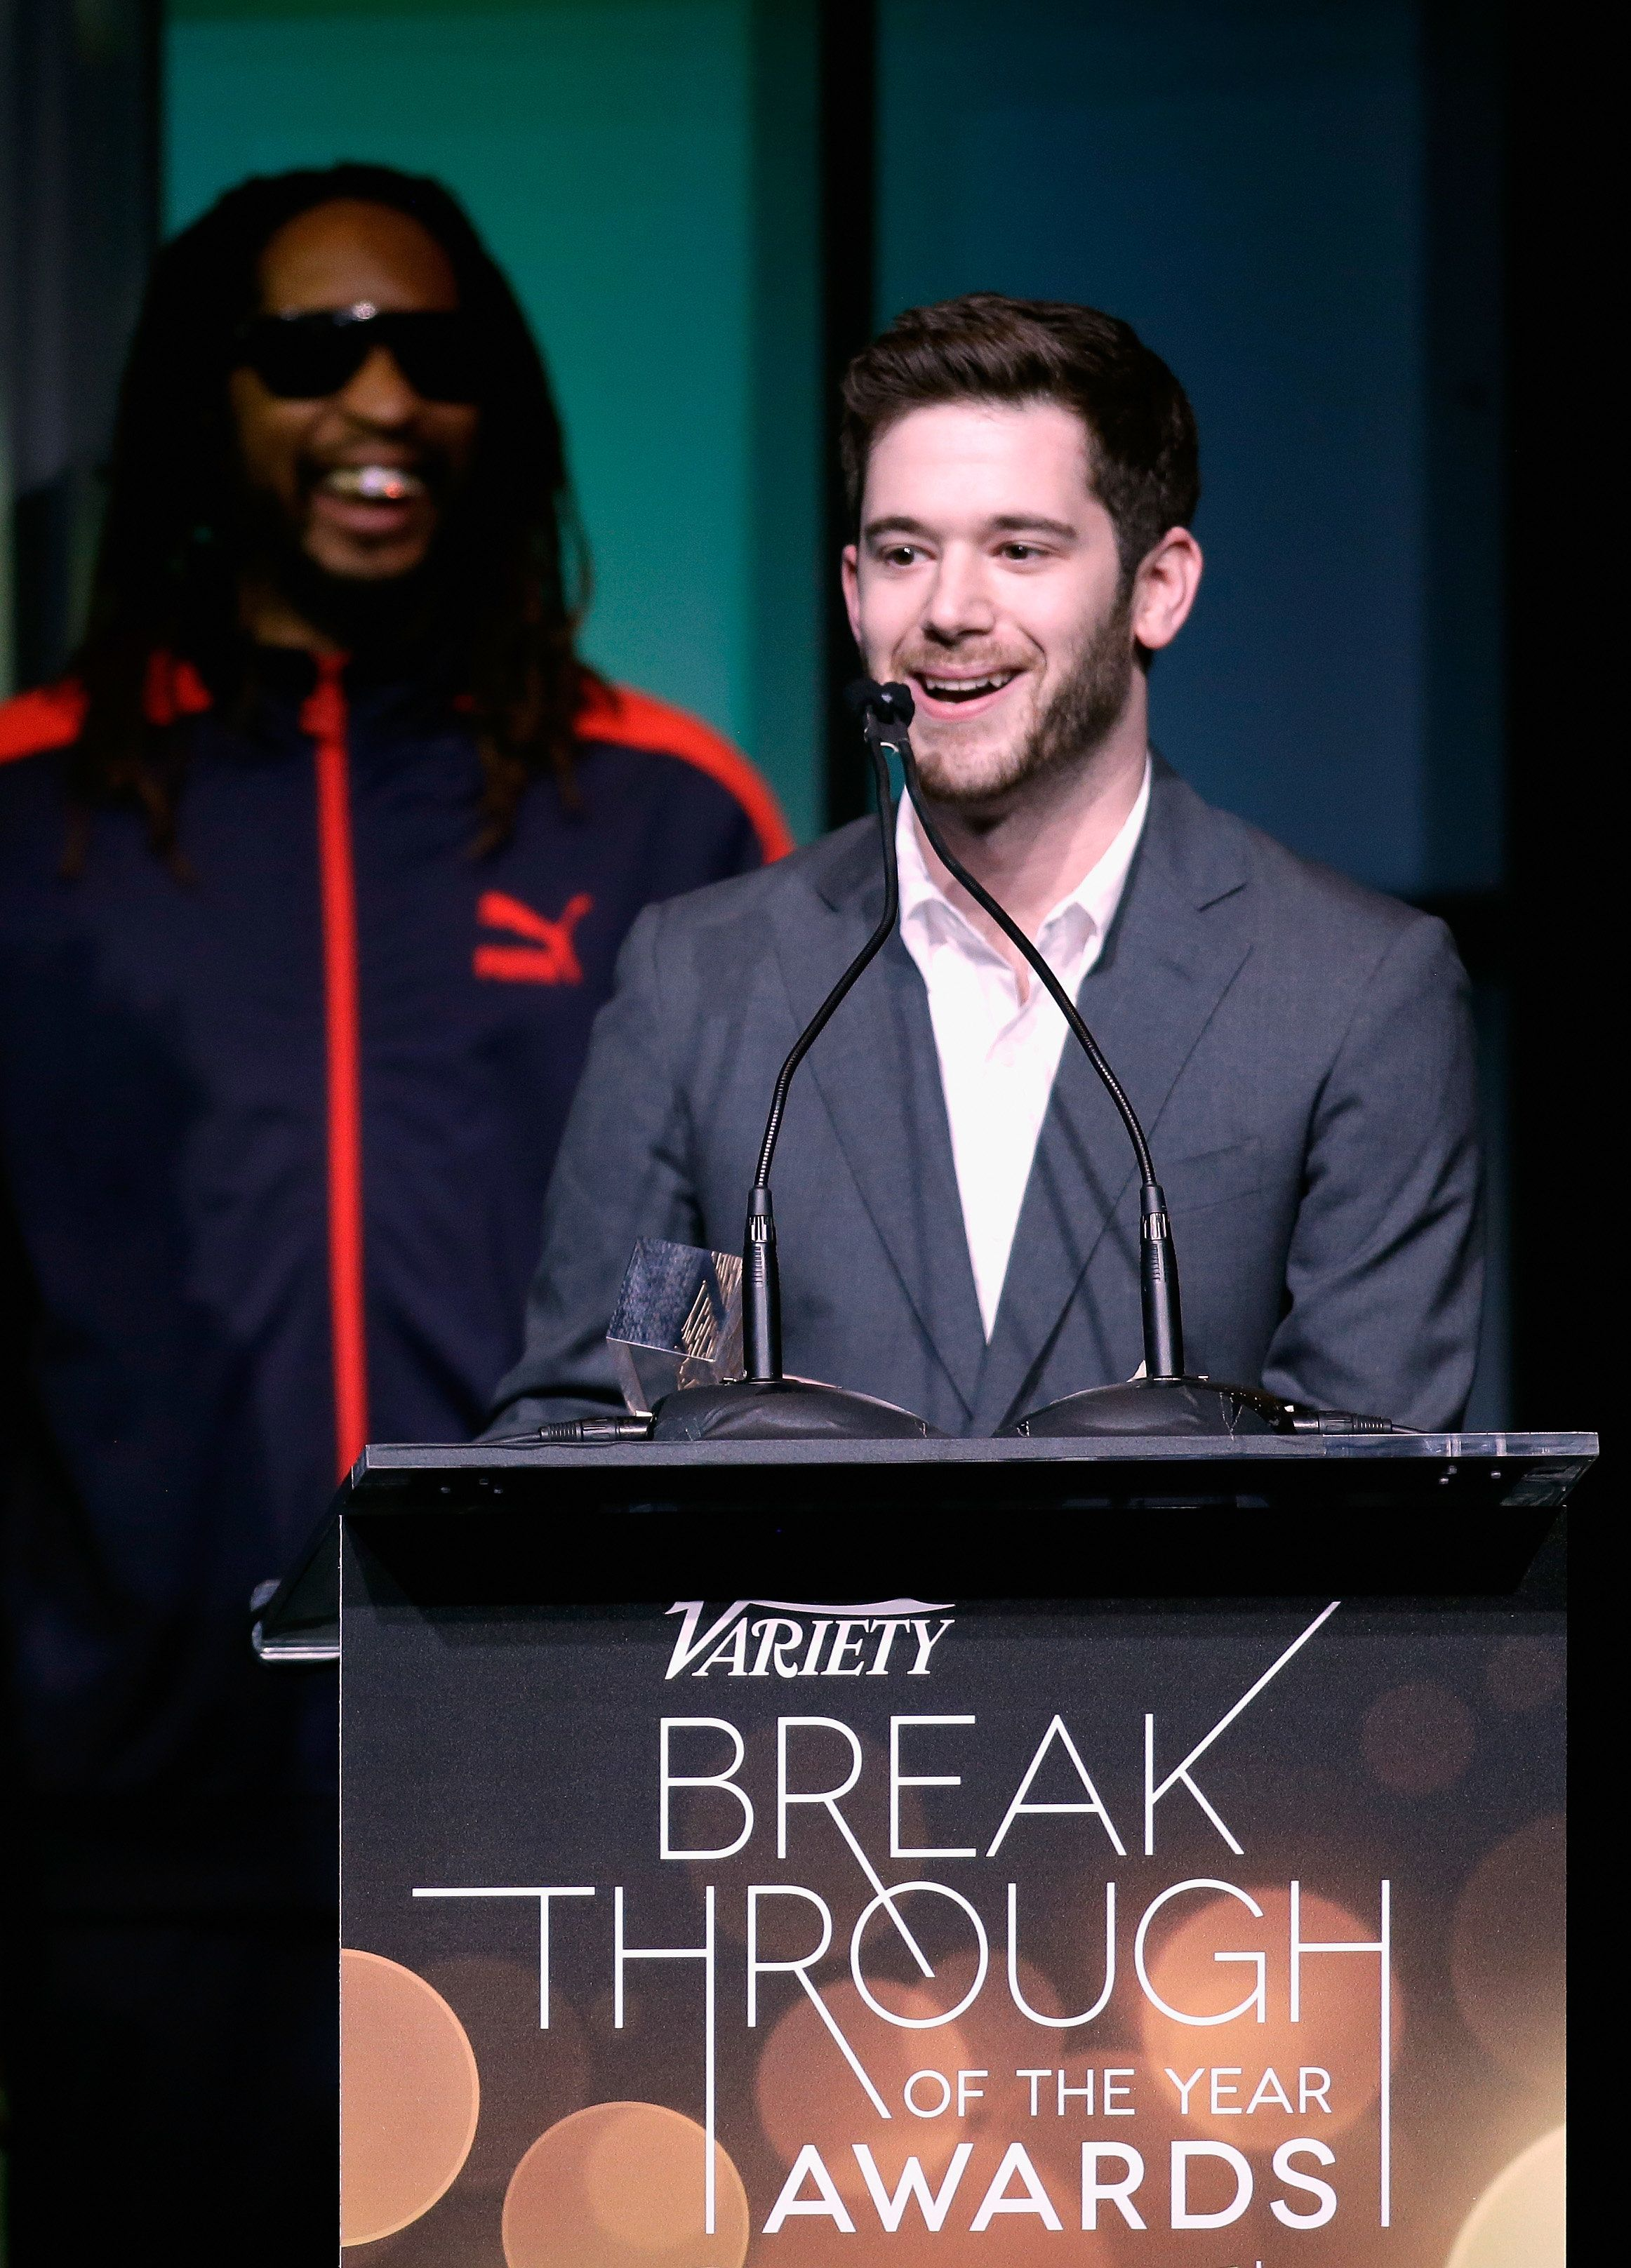 LAS VEGAS, NV - JANUARY 09:  Honoree Colin Kroll (R) accepts the Breakthrough Award for Emerging Technology from rapper Lil Jon onstage at the Variety Breakthrough of the Year Awards during the 2014 International CES at The Las Vegas Hotel & Casino on January 9, 2014 in Las Vegas, Nevada.  (Photo by Isaac Brekken/Getty Images for Variety)